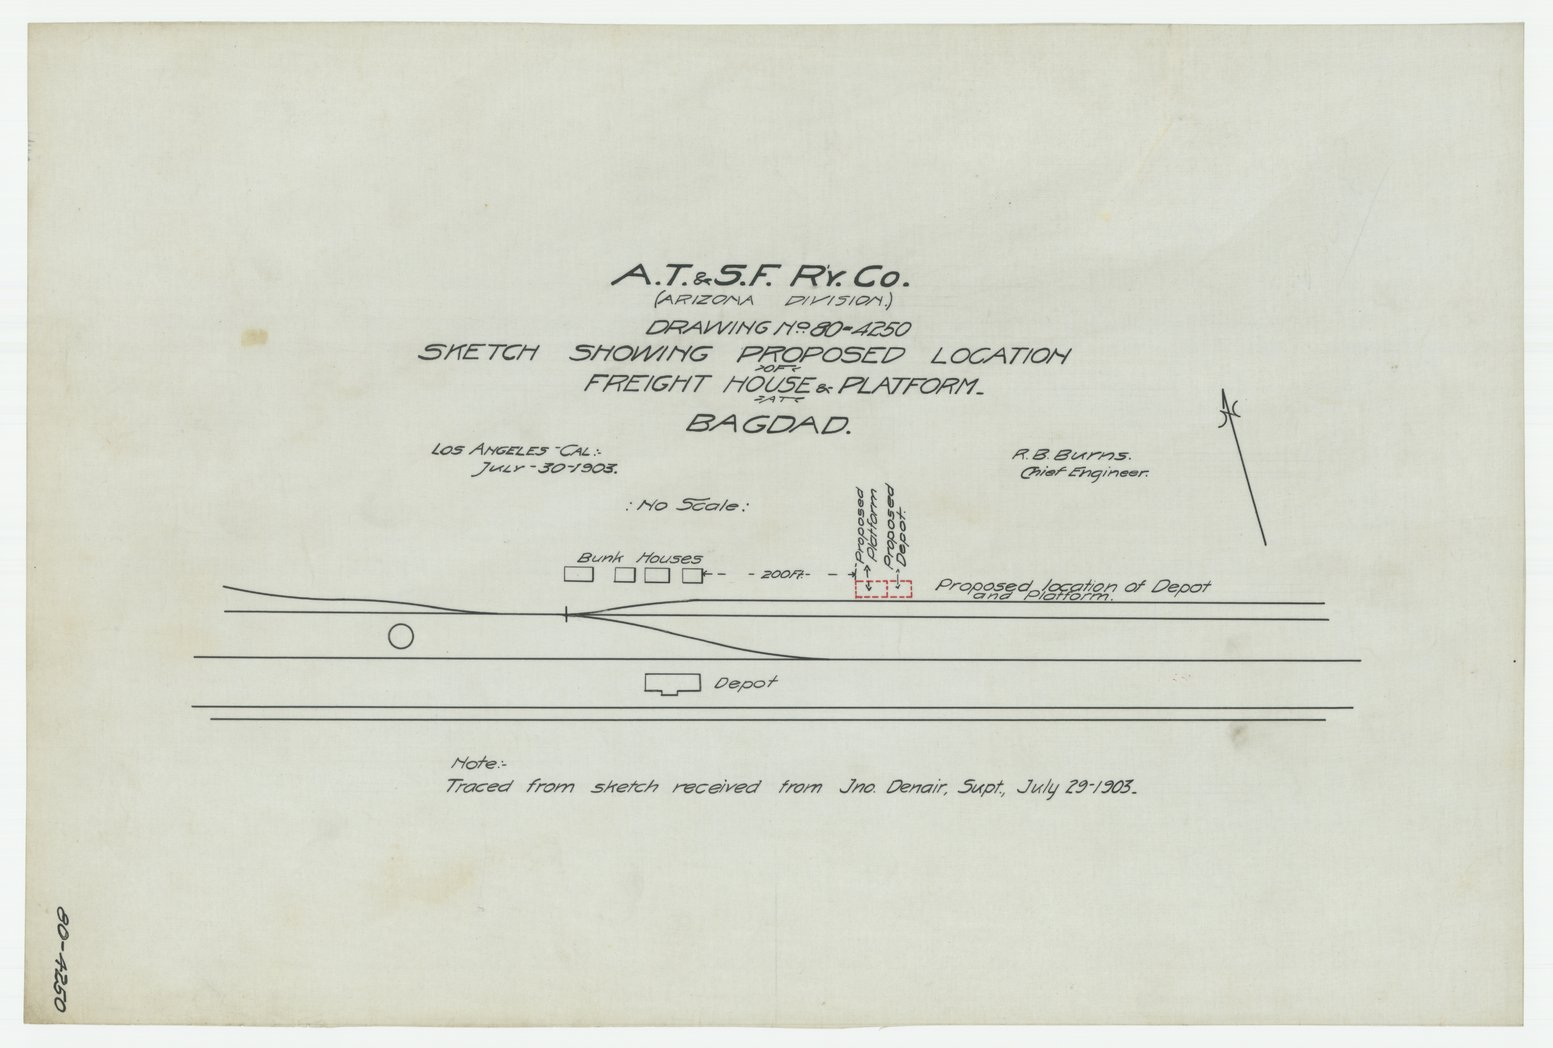 AT&SF proposed freight house & platform, Bagdad, California